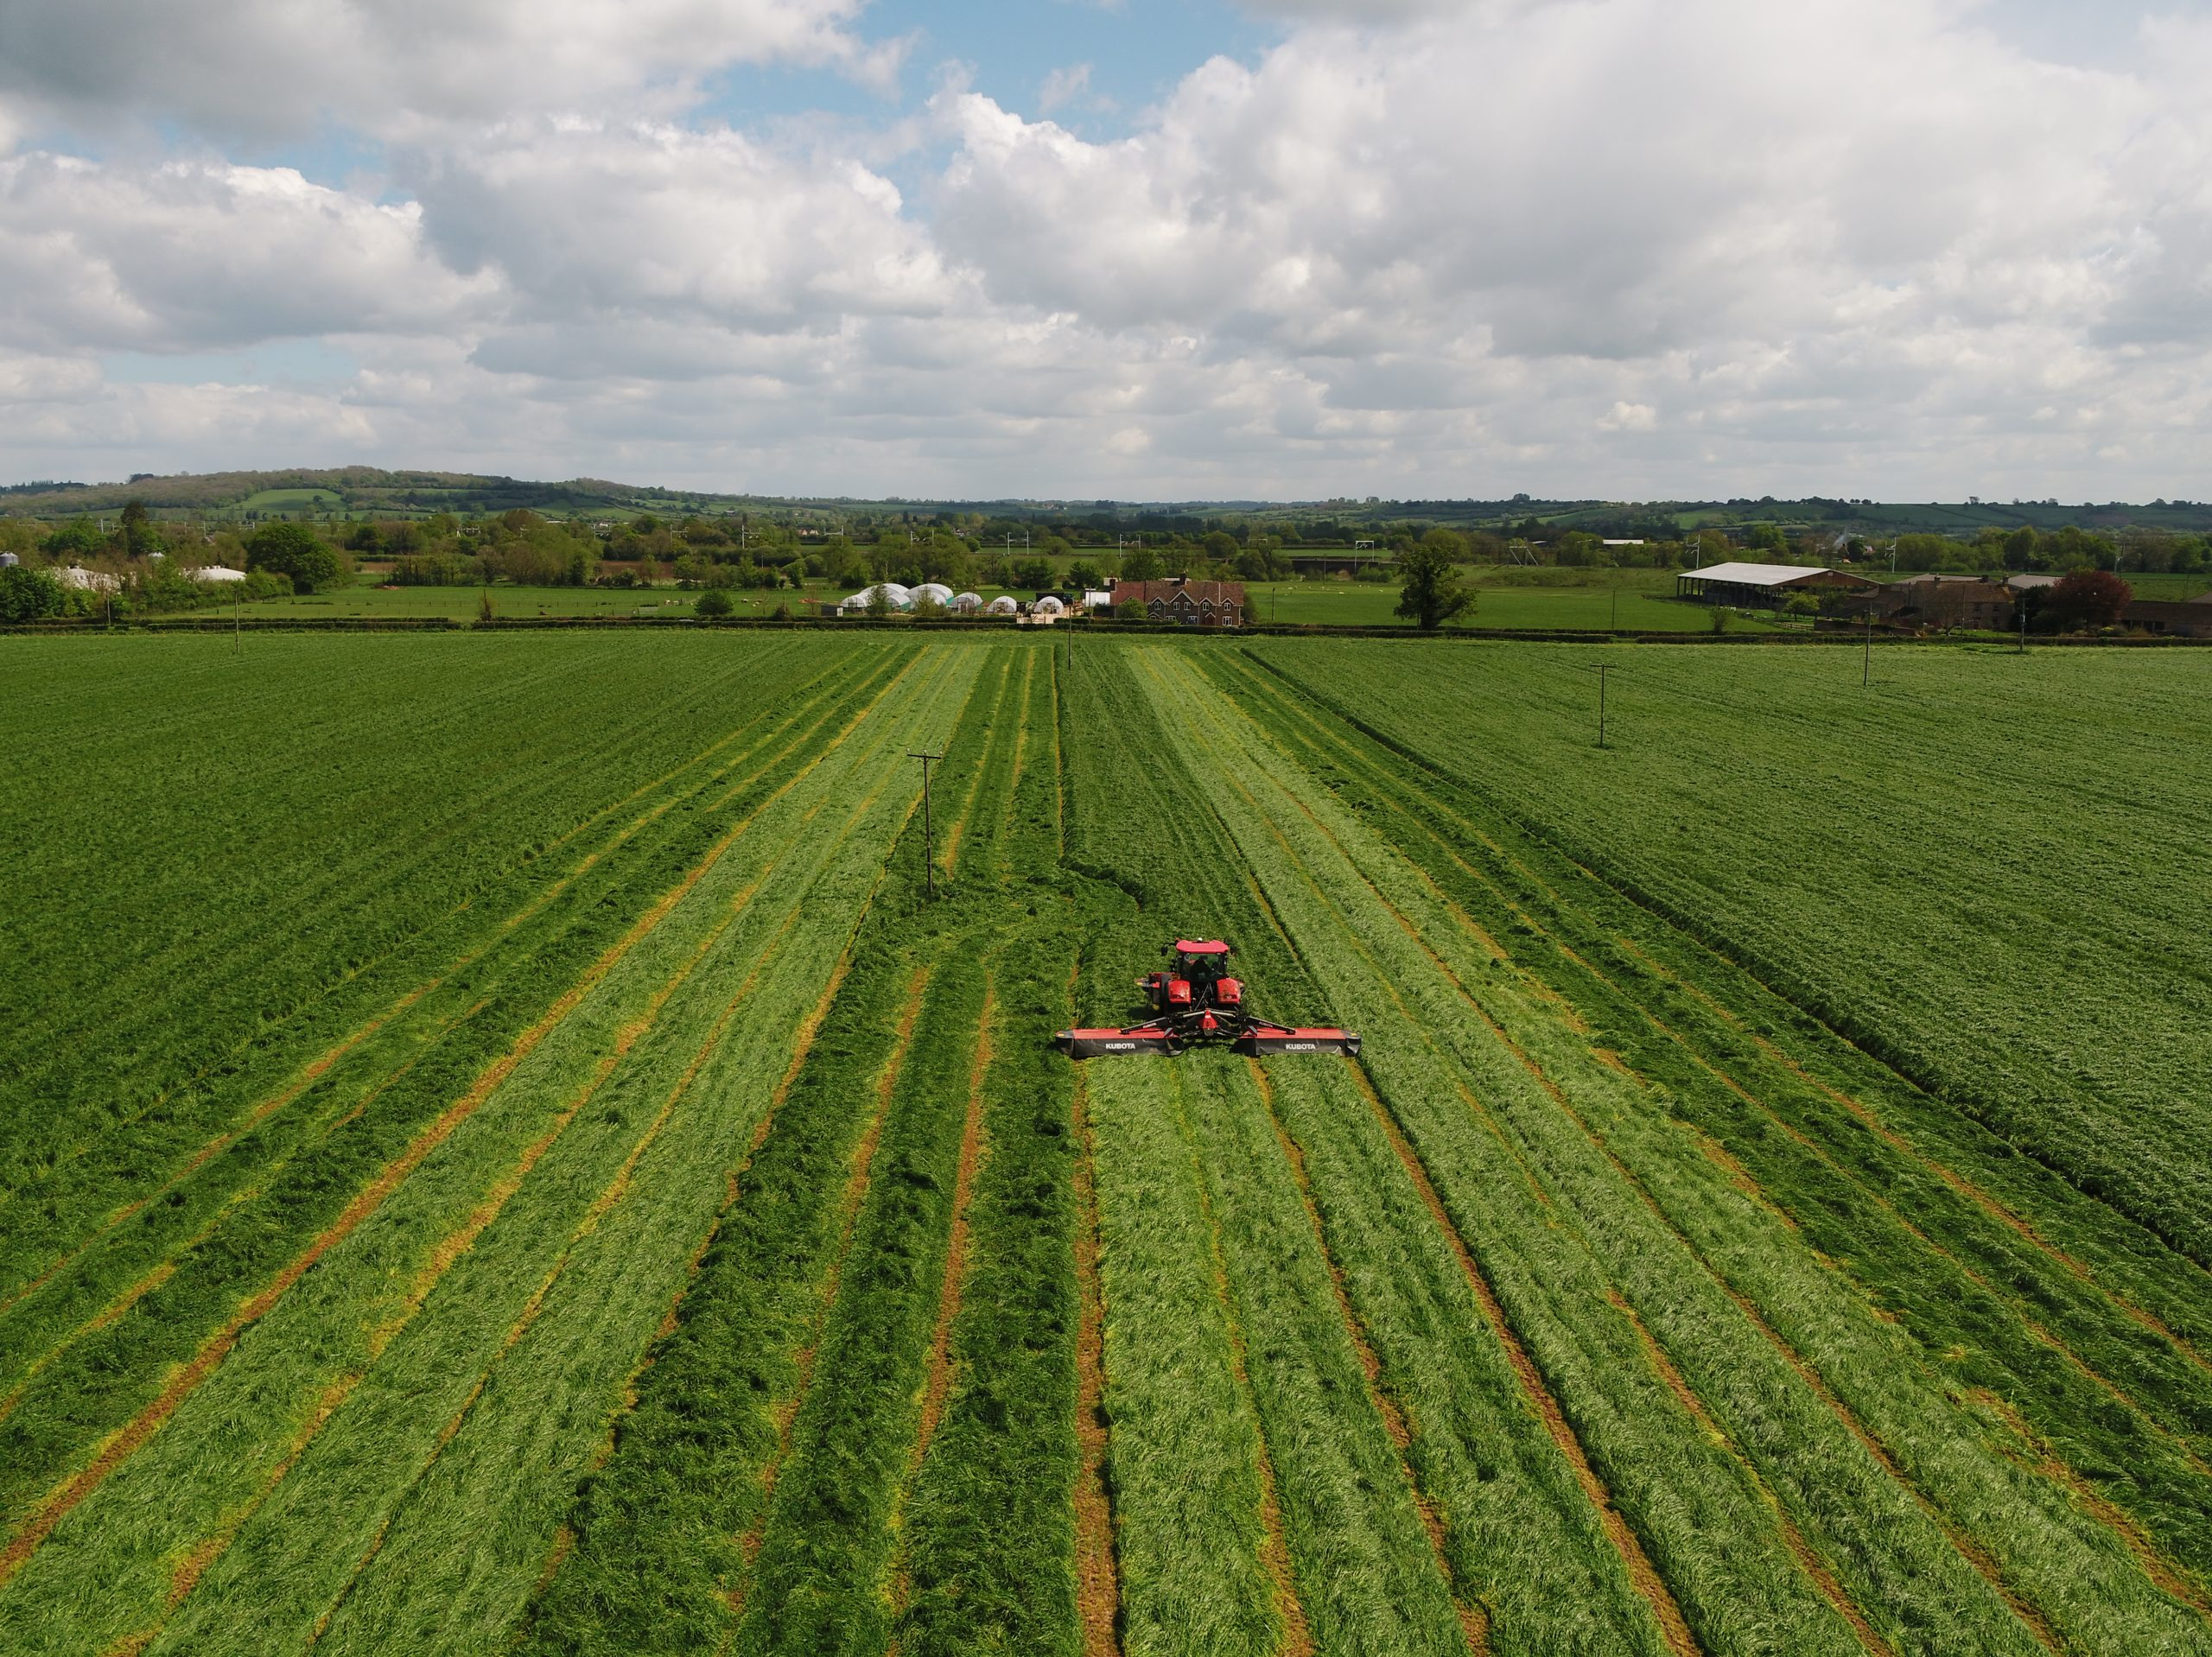 drone image of tractor and field